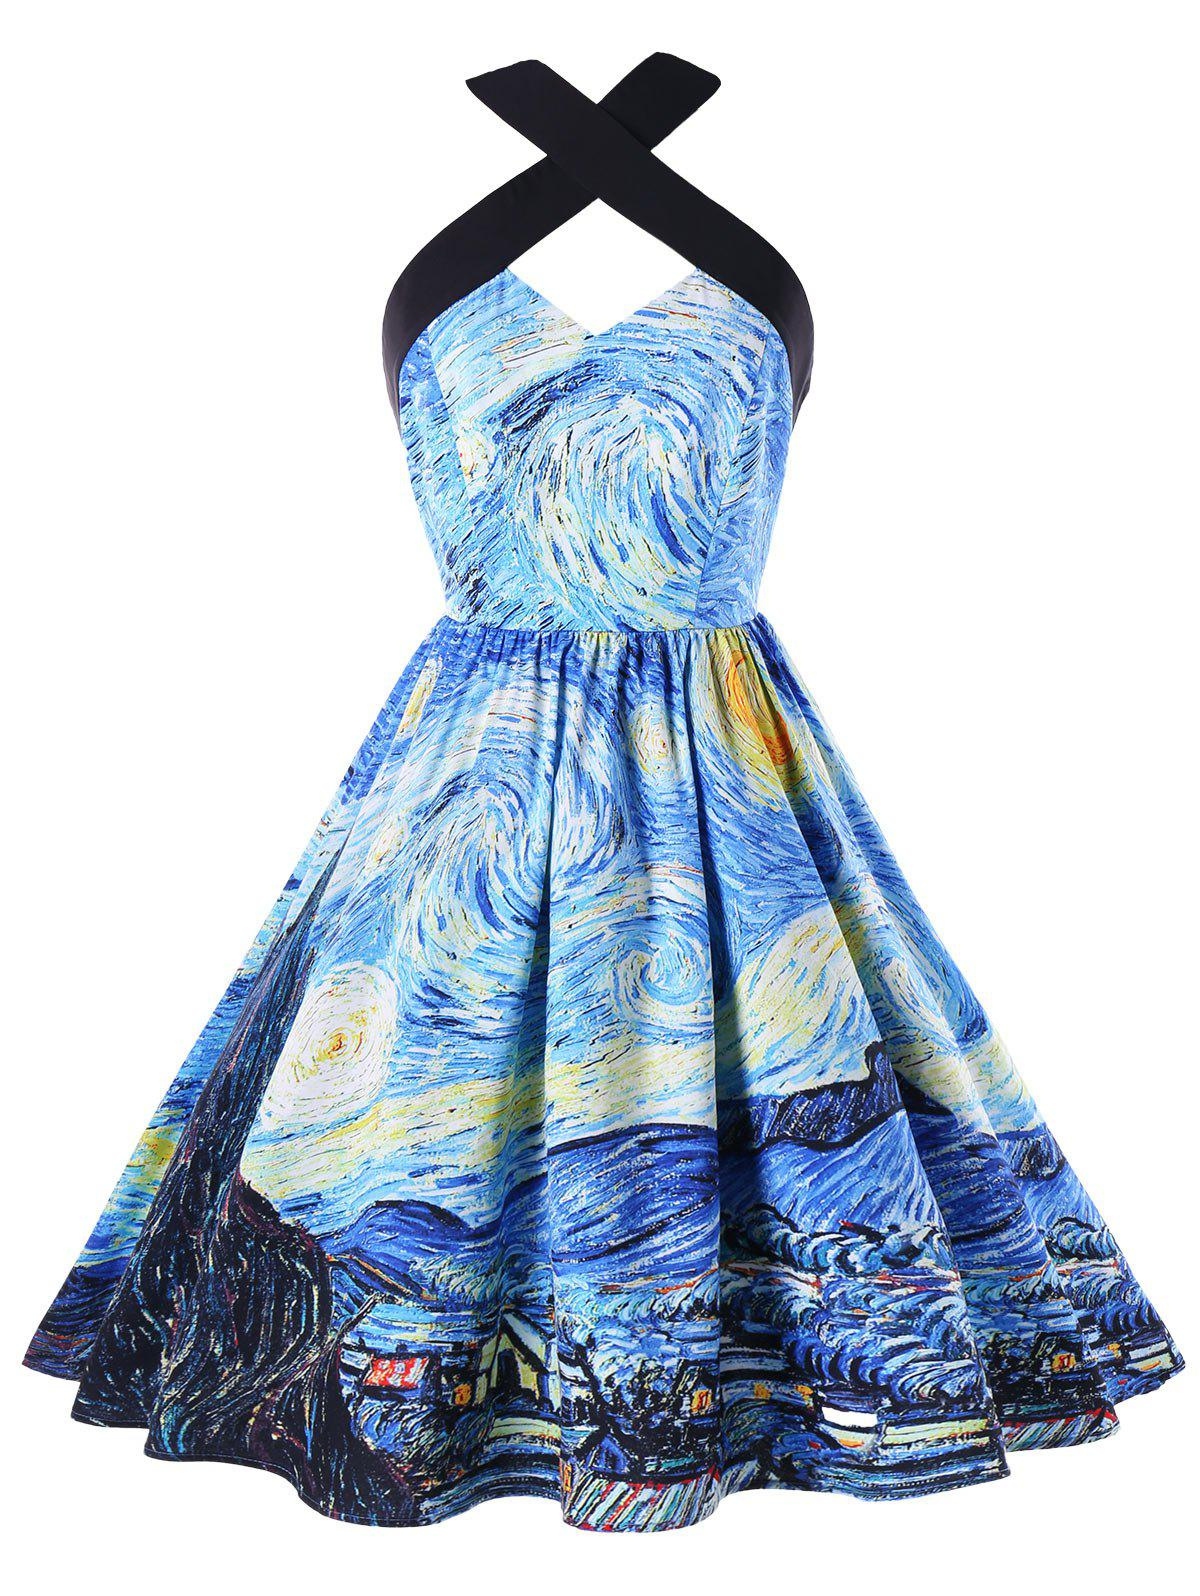 Trendy Galaxy Graphic Vintage Swing Dress